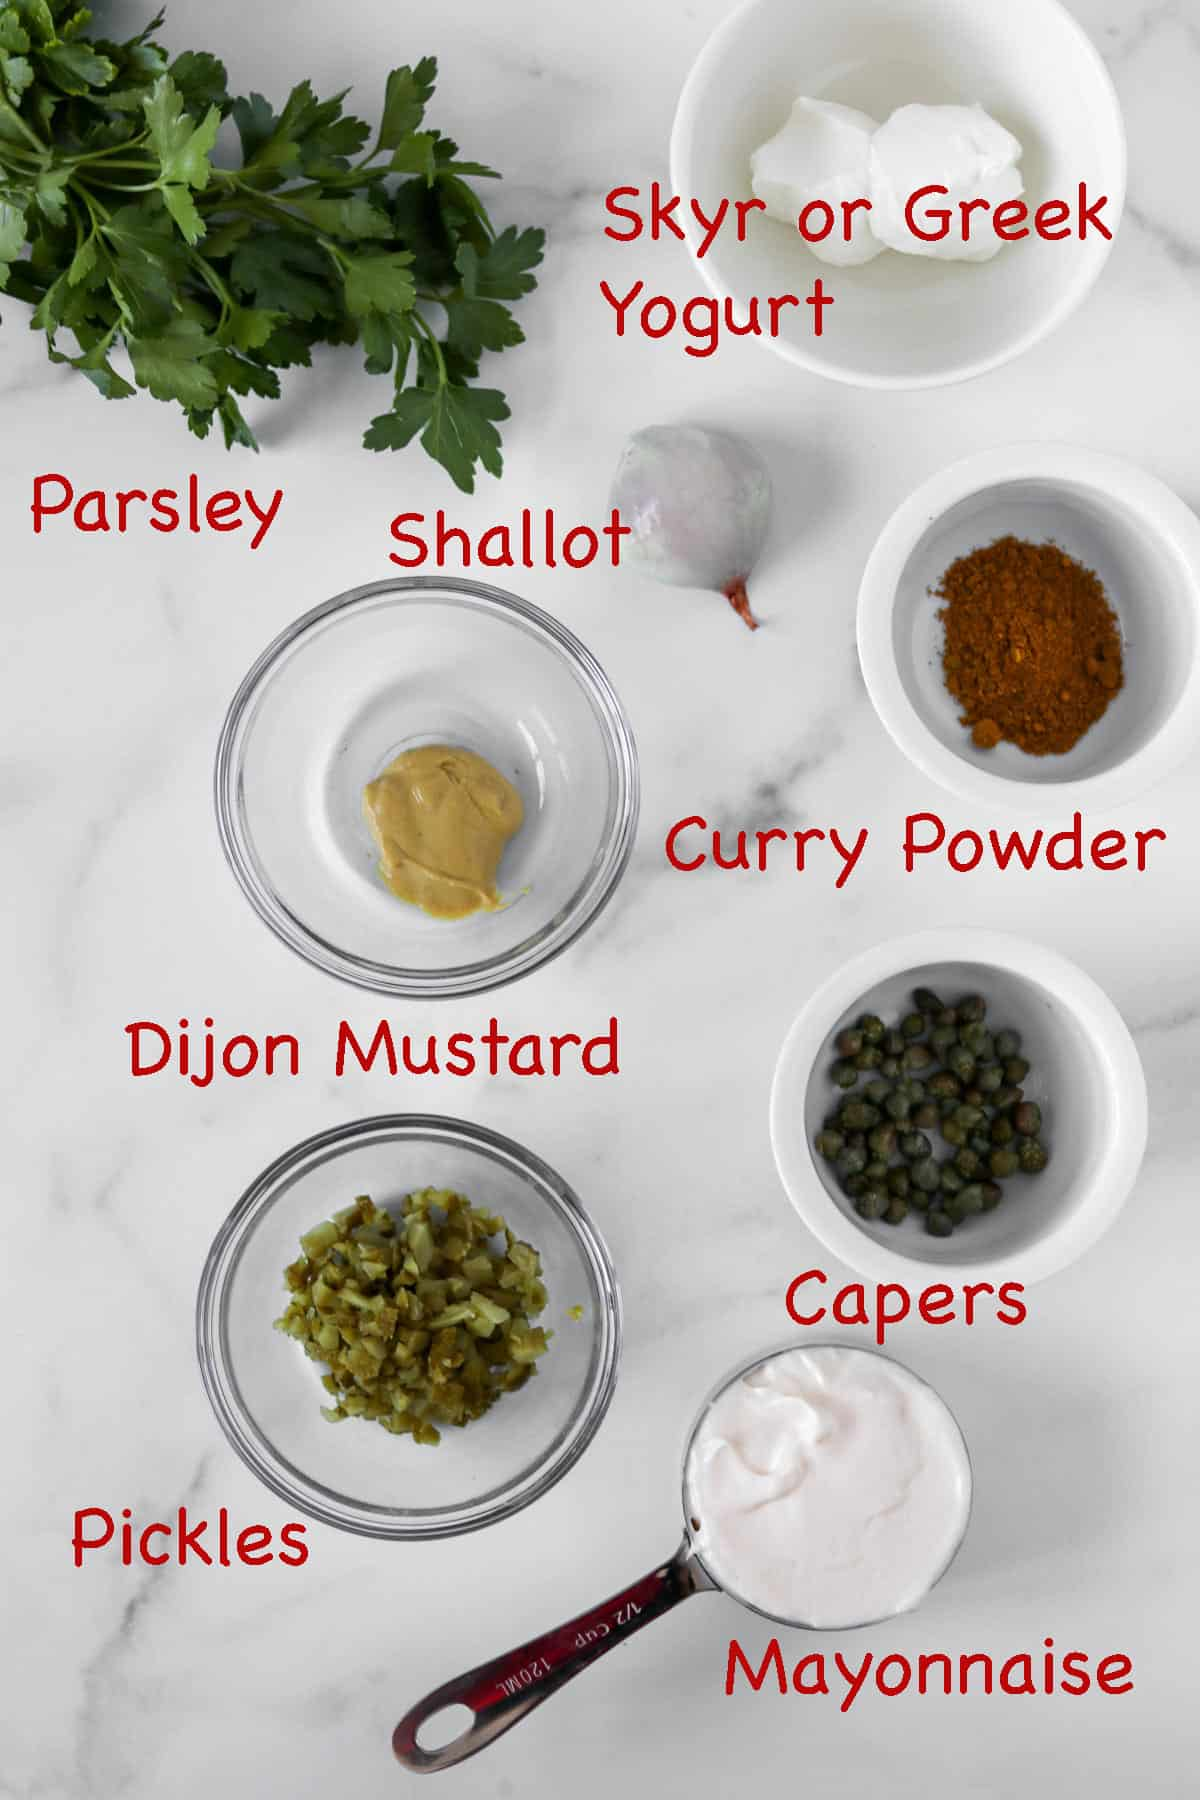 Labeled ingredients for Easy Danish Remoulade.